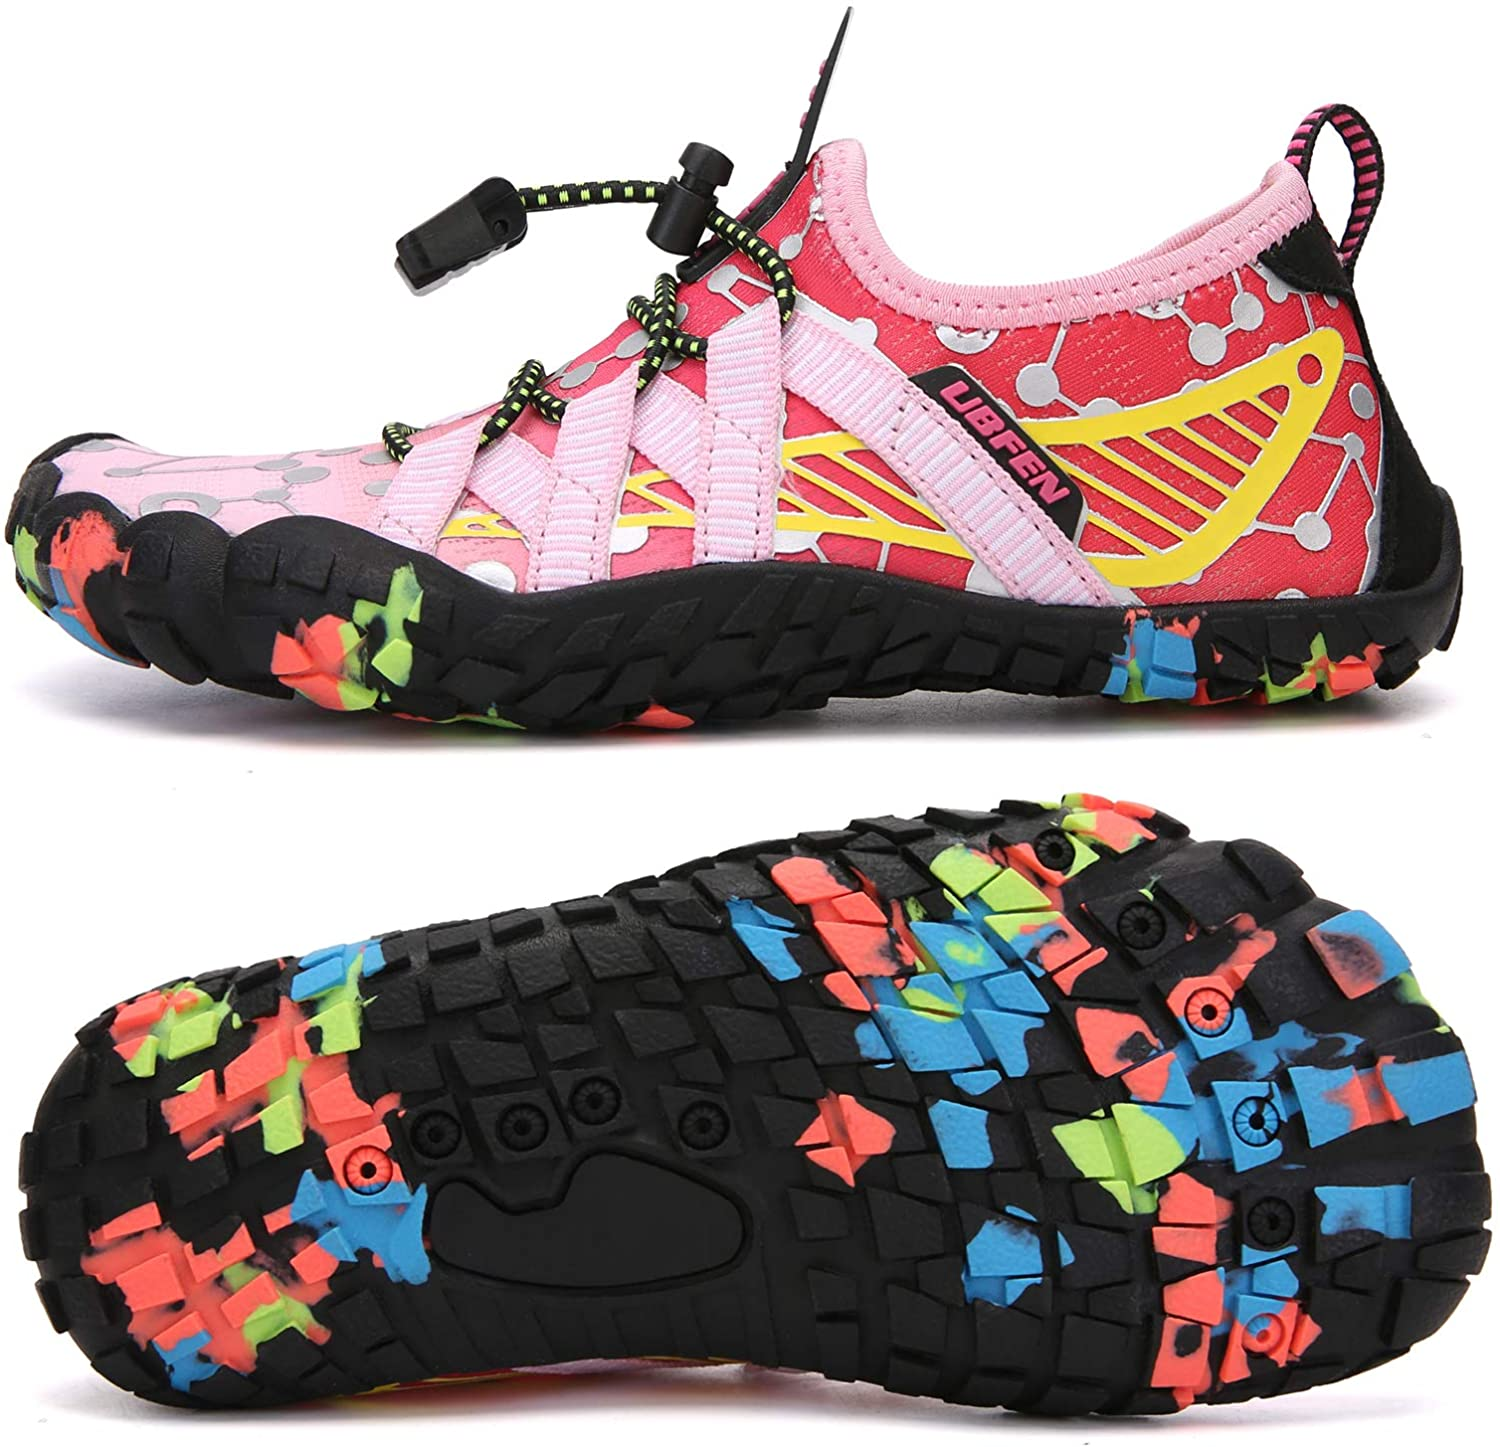 Direct store UBFEN Water Shoes Max 72% OFF for Kids Boys Aqua Beach Socks Girls Barefoot